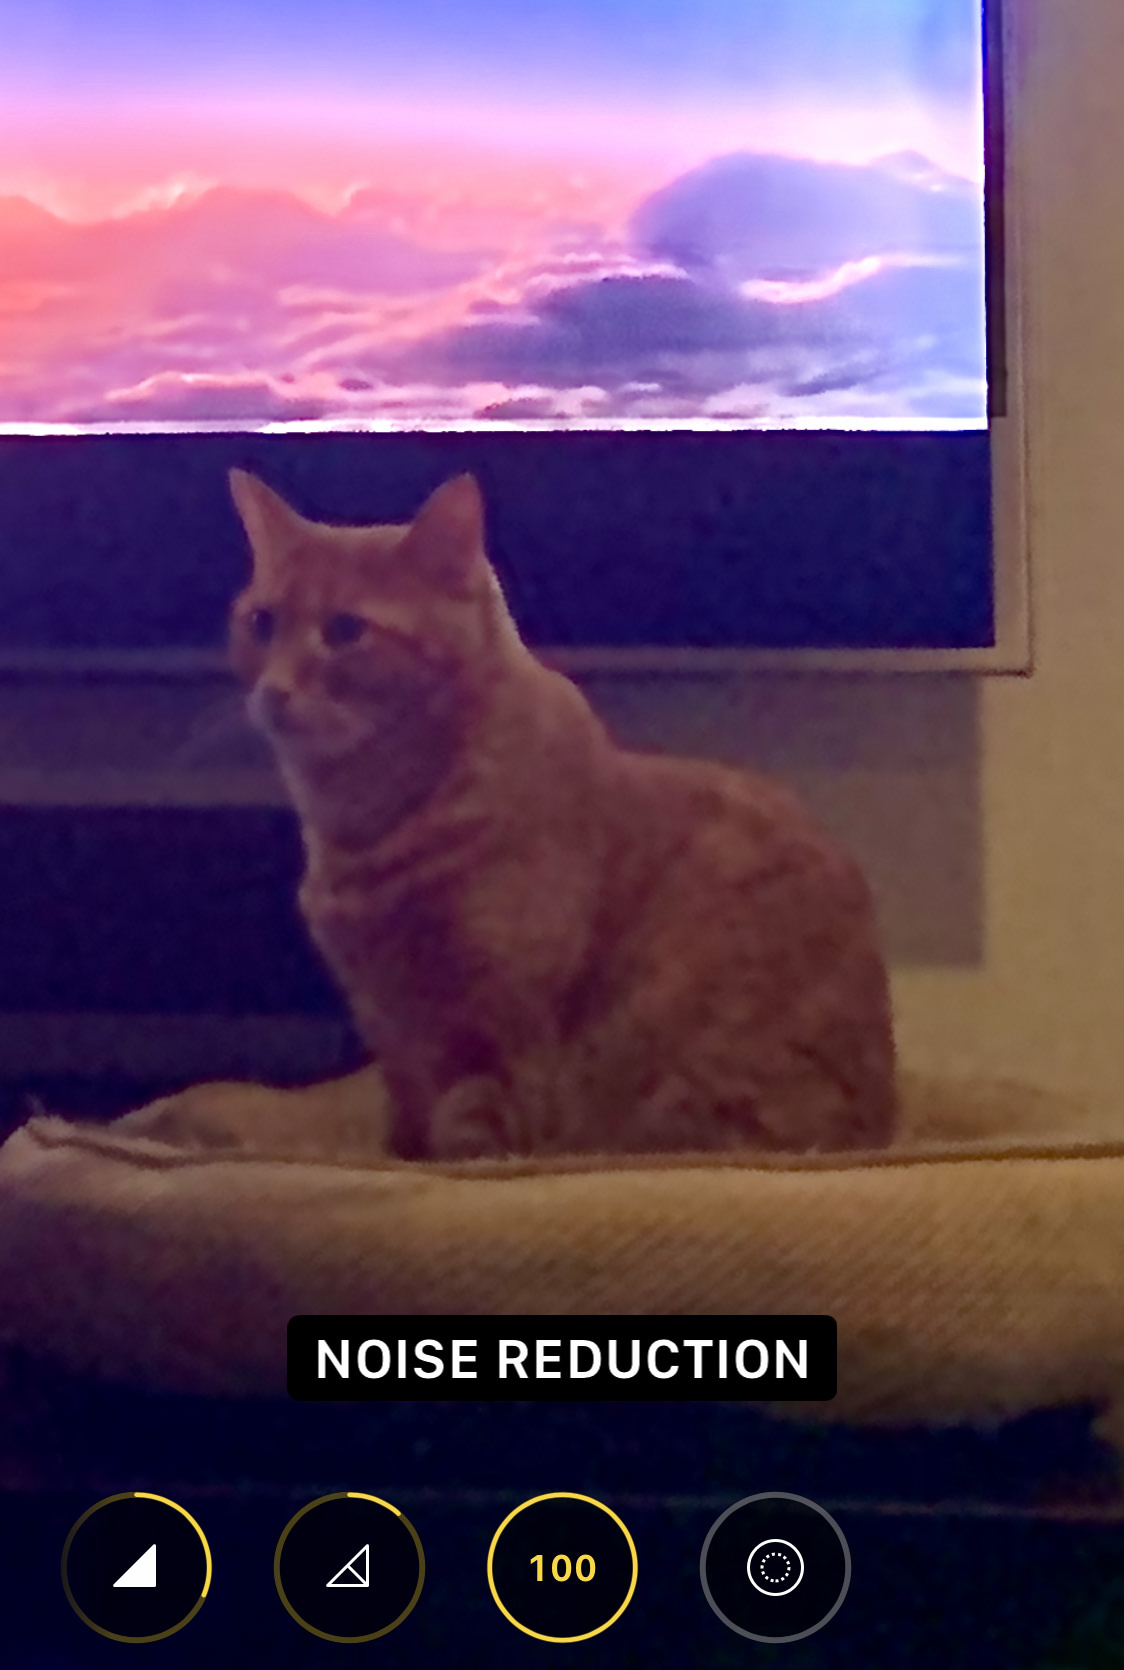 My cat Jenny sitting in front of a television, but she's blurred.